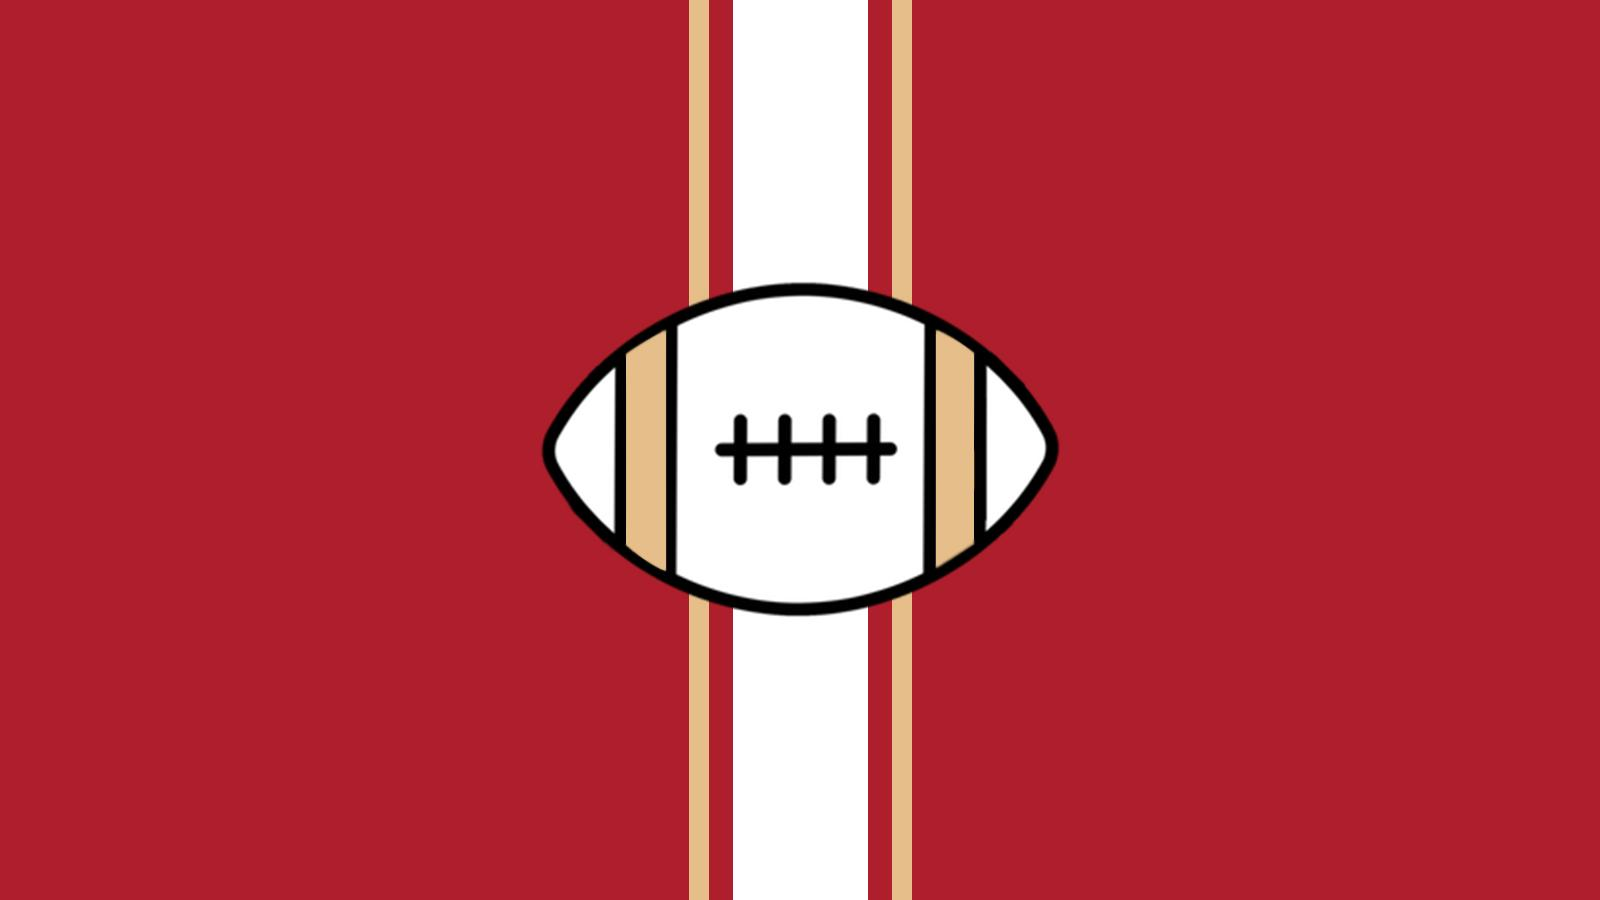 NFC Wild Card or Divisional Playoffs - TBD at San Francisco 49ers (Date TBD) (If Necessary)